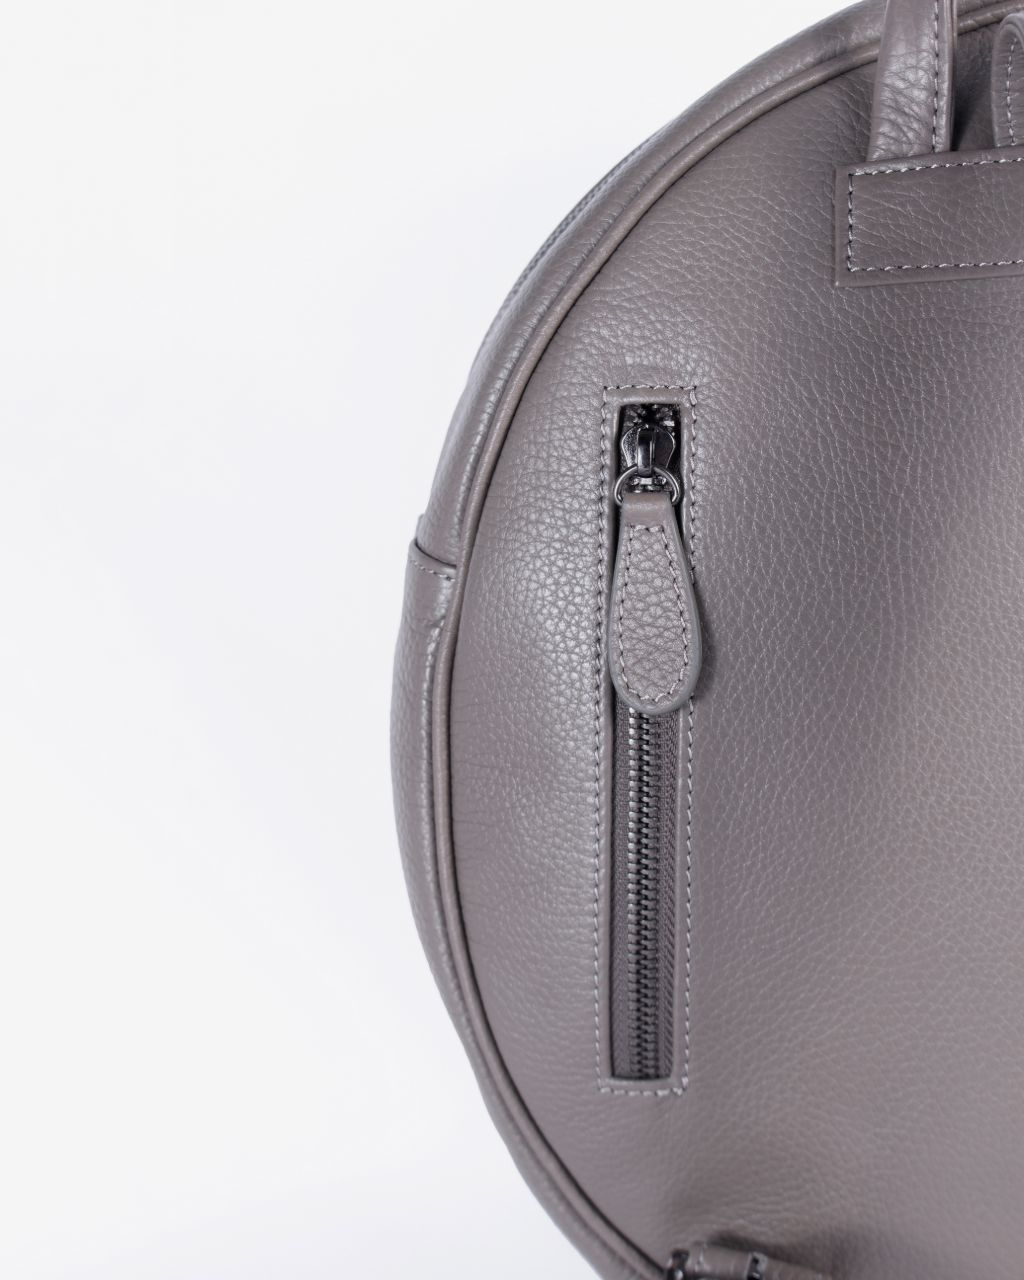 Playful yet Minimal Round Backpack - Fossil